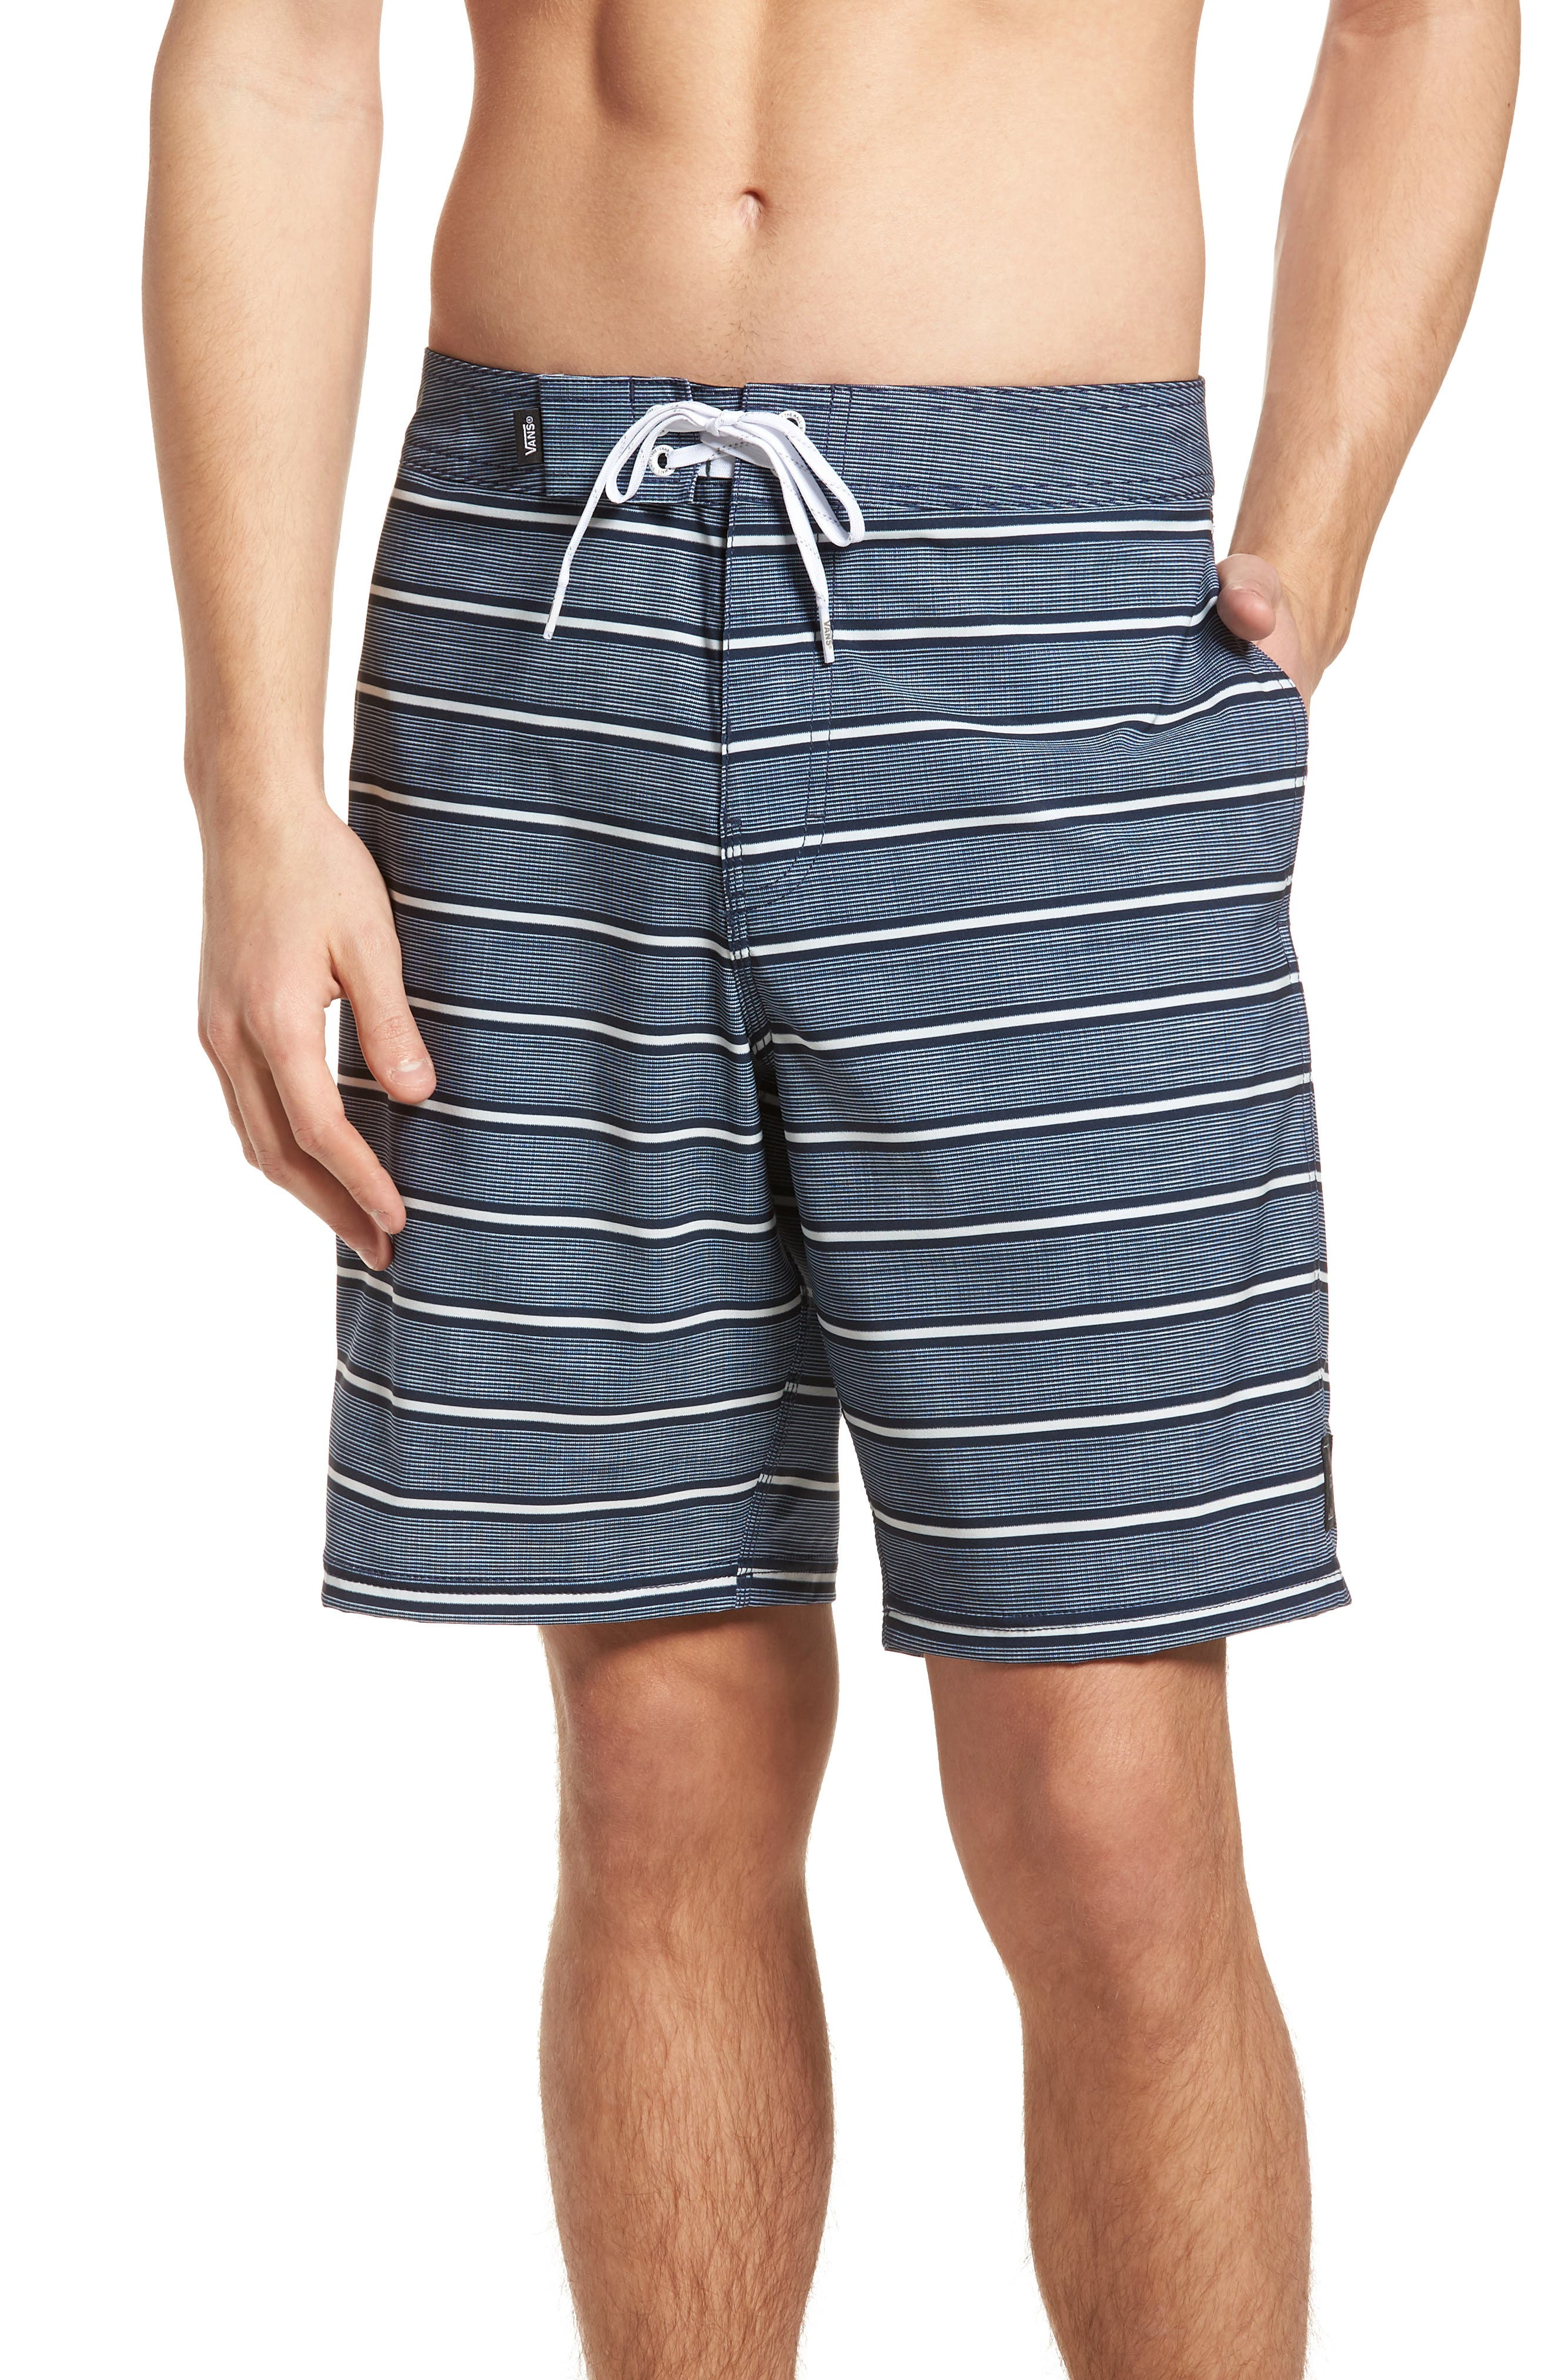 Rooftop Board Shorts,                             Main thumbnail 1, color,                             Dress Blues